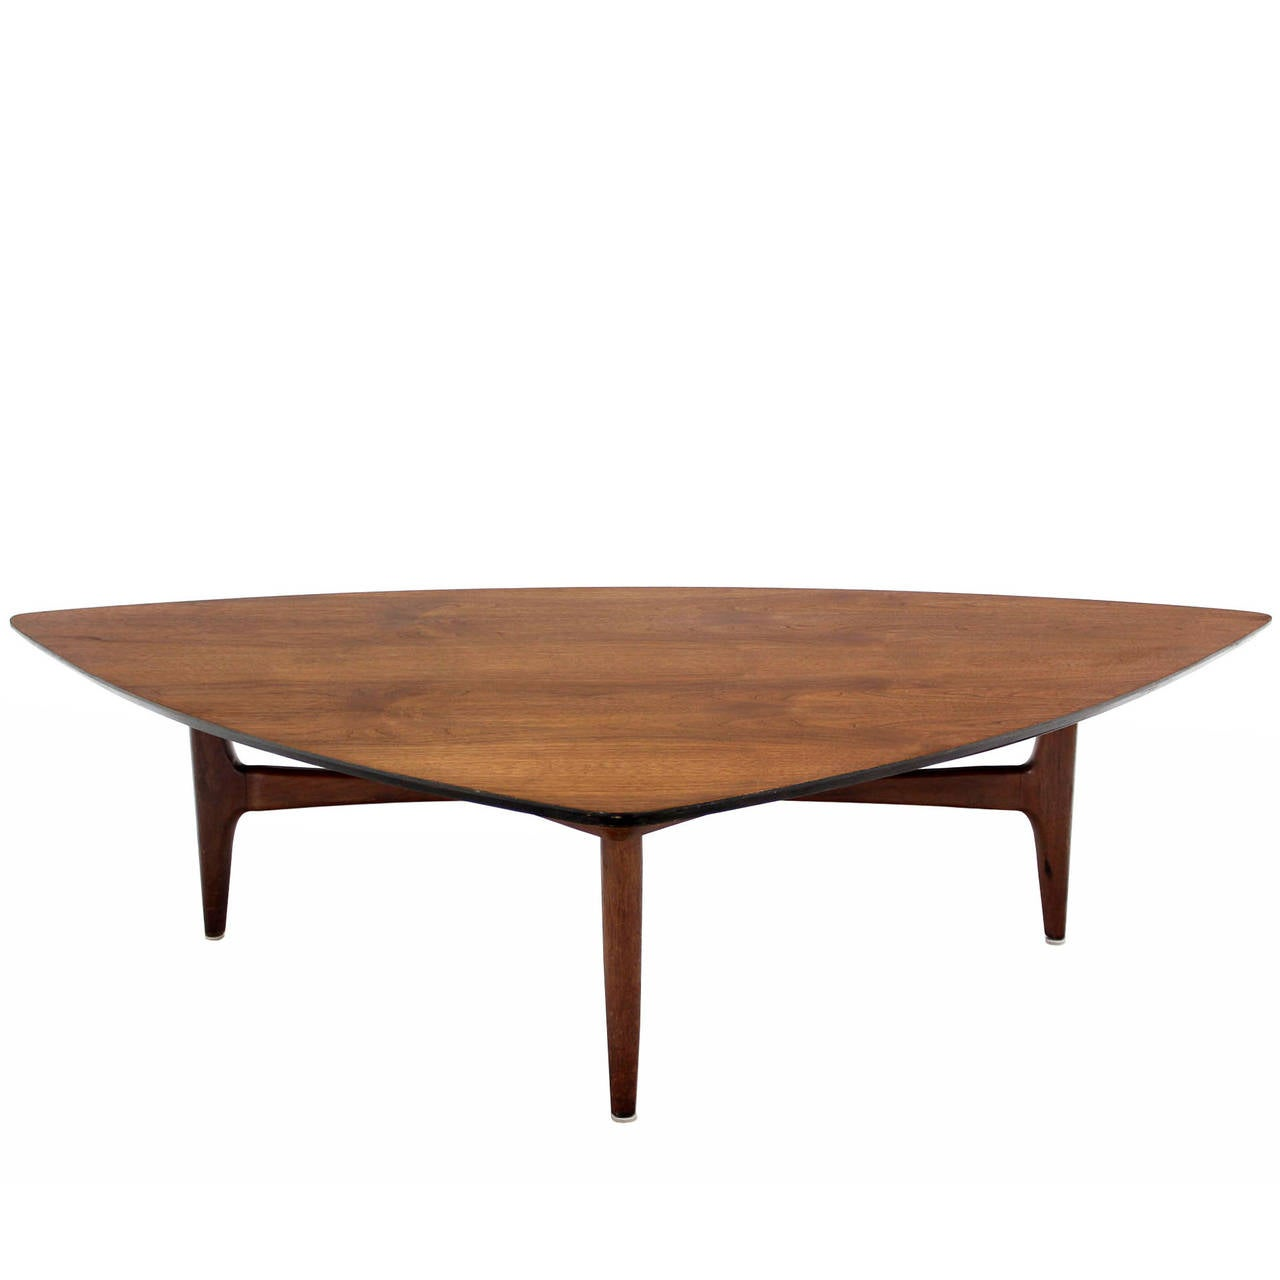 Triangular Surfboard Shape Walnut Coffee Table At 1stdibs